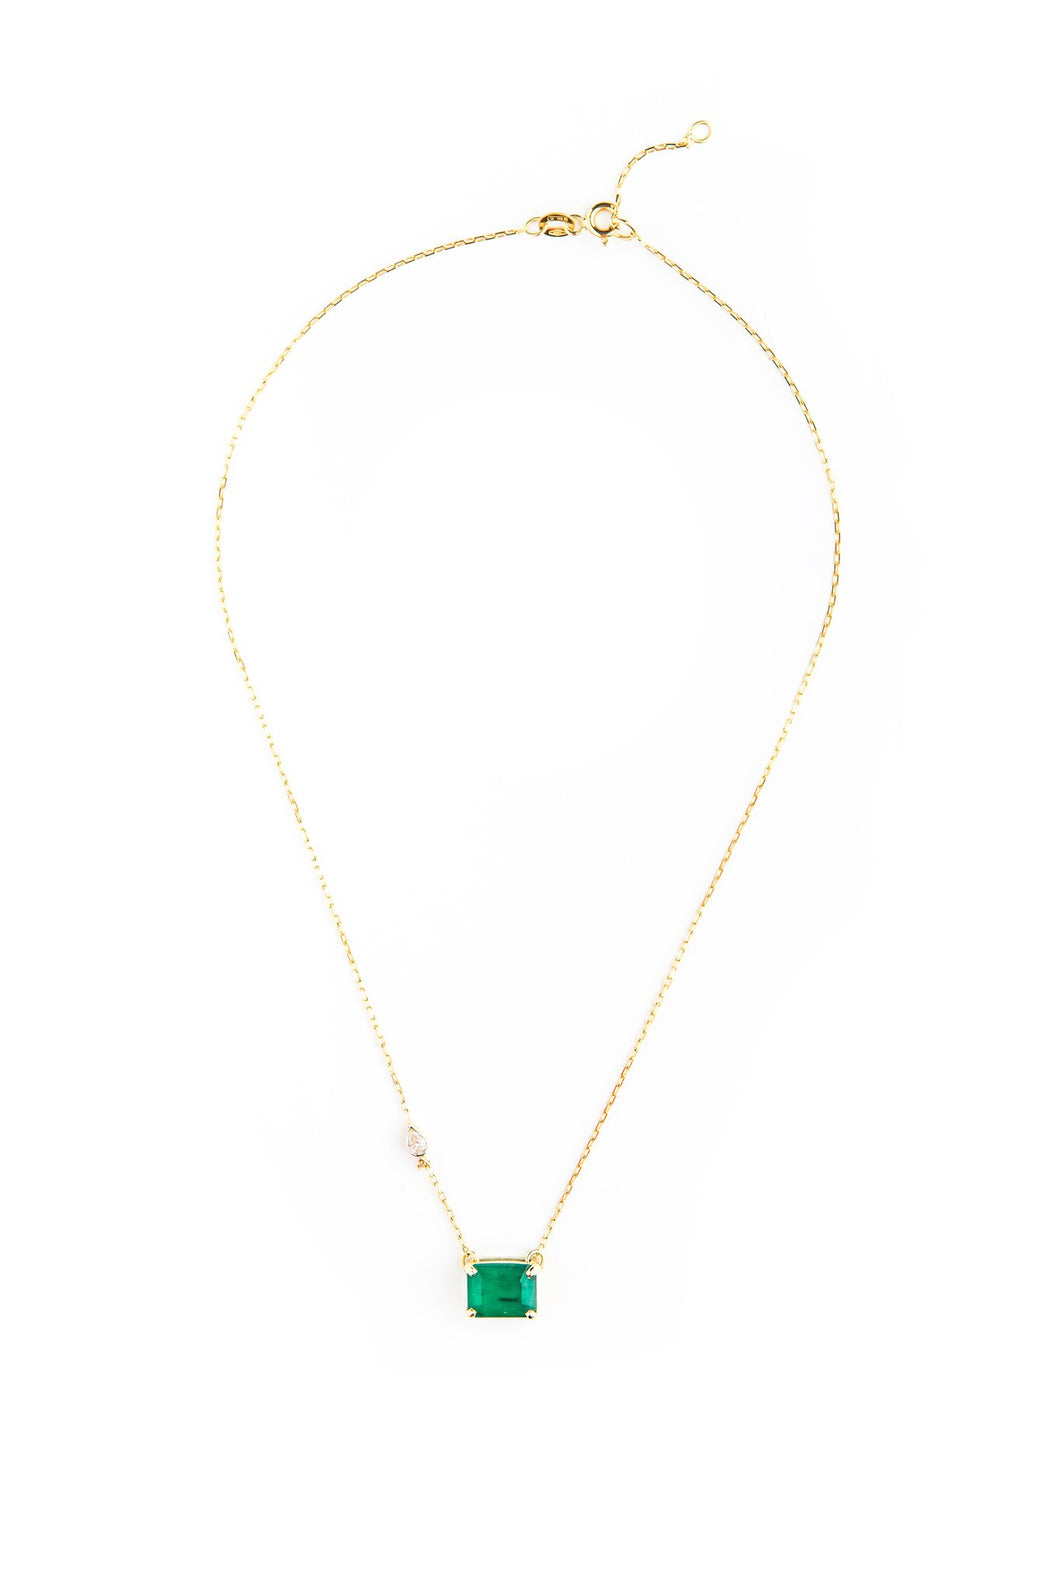 4 CARAT EMERALD CUT ROCK NECKLACE